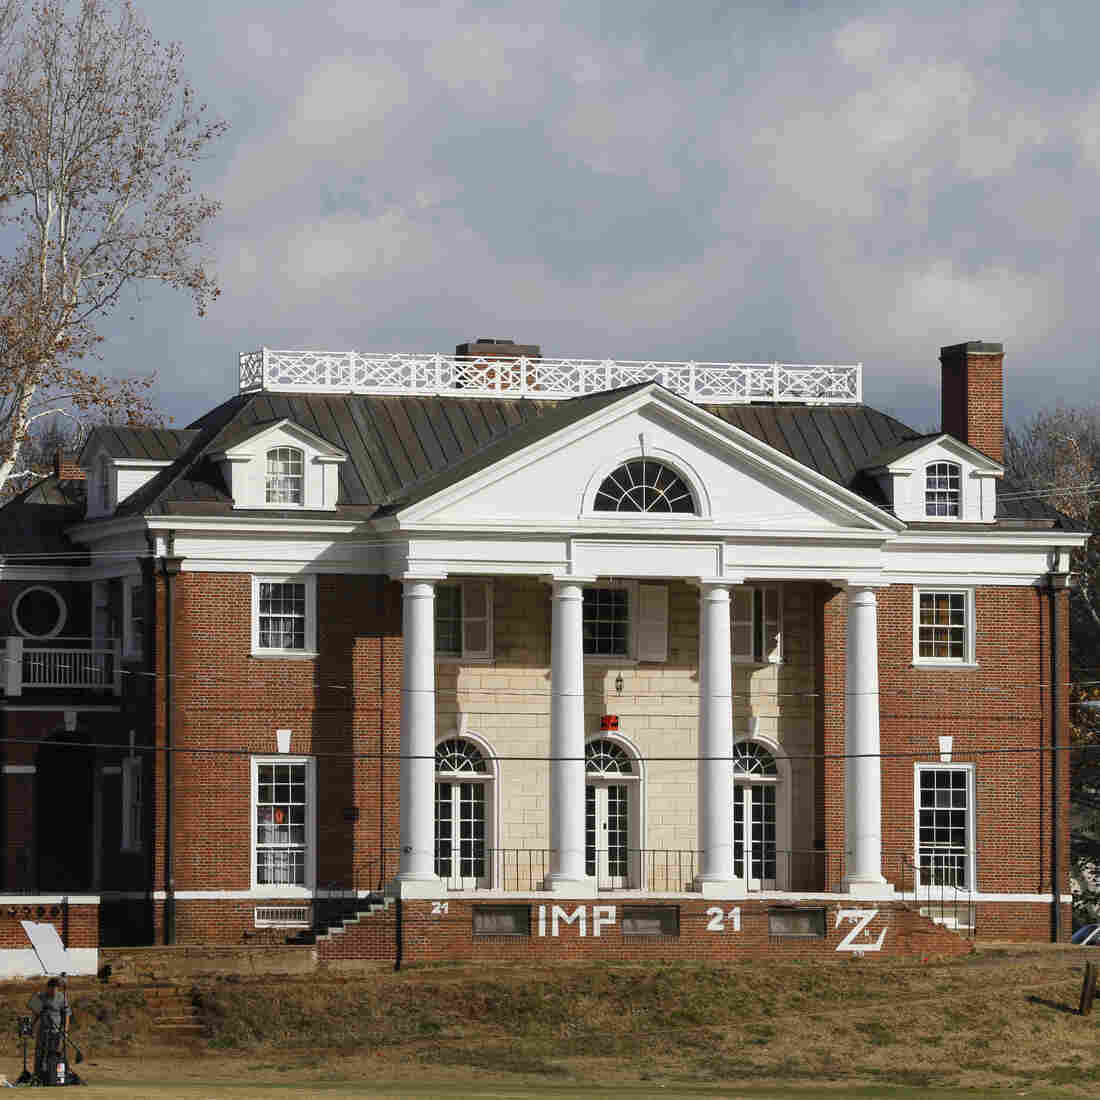 "The Phi Kappa Psi fraternity house at the University of Virginia in Charlottesville, Va. The fraternity was at the center of gang-rape allegations published in Rolling Stone magazine. The magazine said Friday that there were ""discrepancies"" in its reporting."